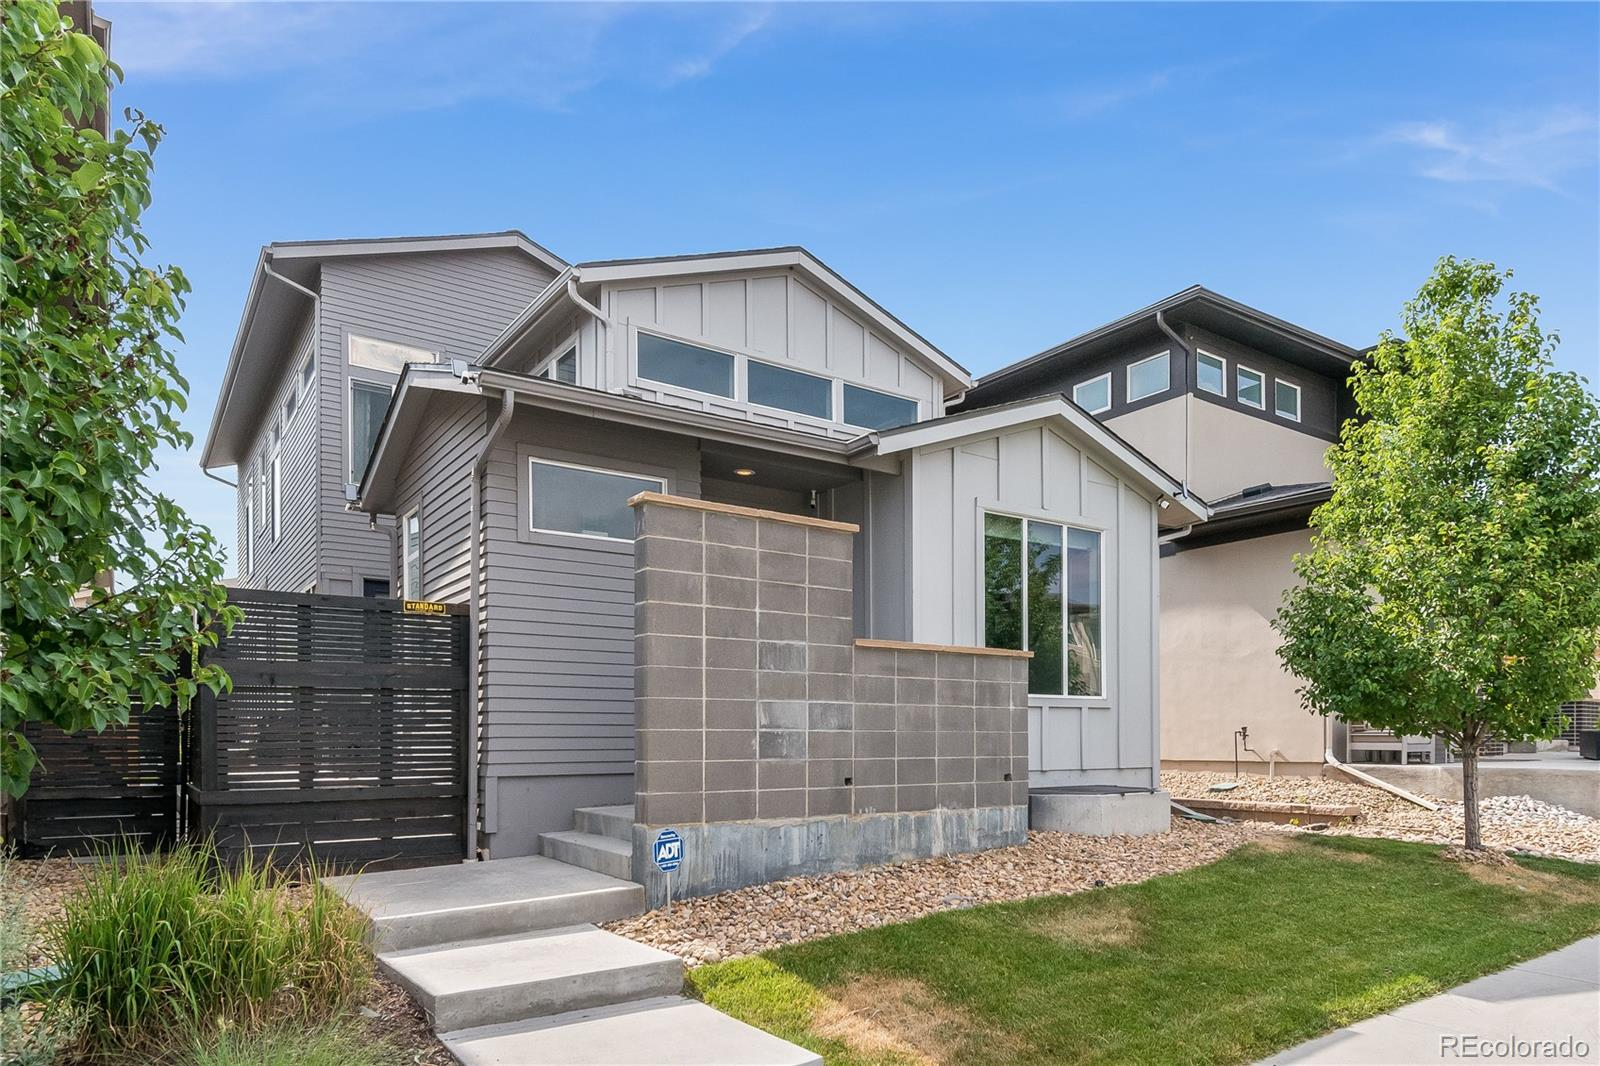 MLS# 4481467 - 2 - 6641 Alan Drive, Denver, CO 80221